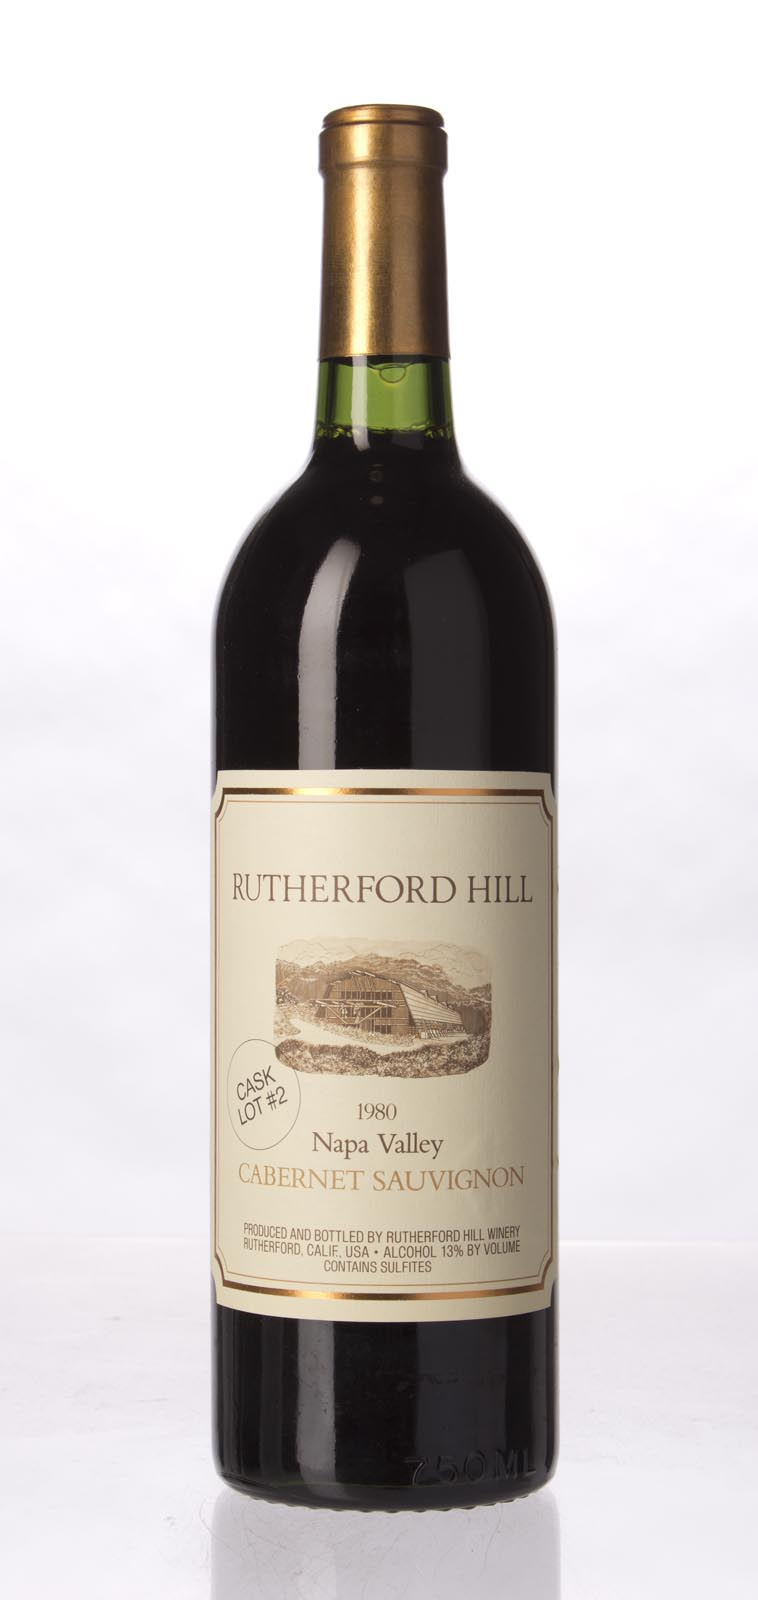 Rutherford Hill Cabernet Sauvignon Napa Valley Cask Lot 2 Limited Edition 1980, 750mL (WS92) from The BPW - Merchants of rare and fine wines.